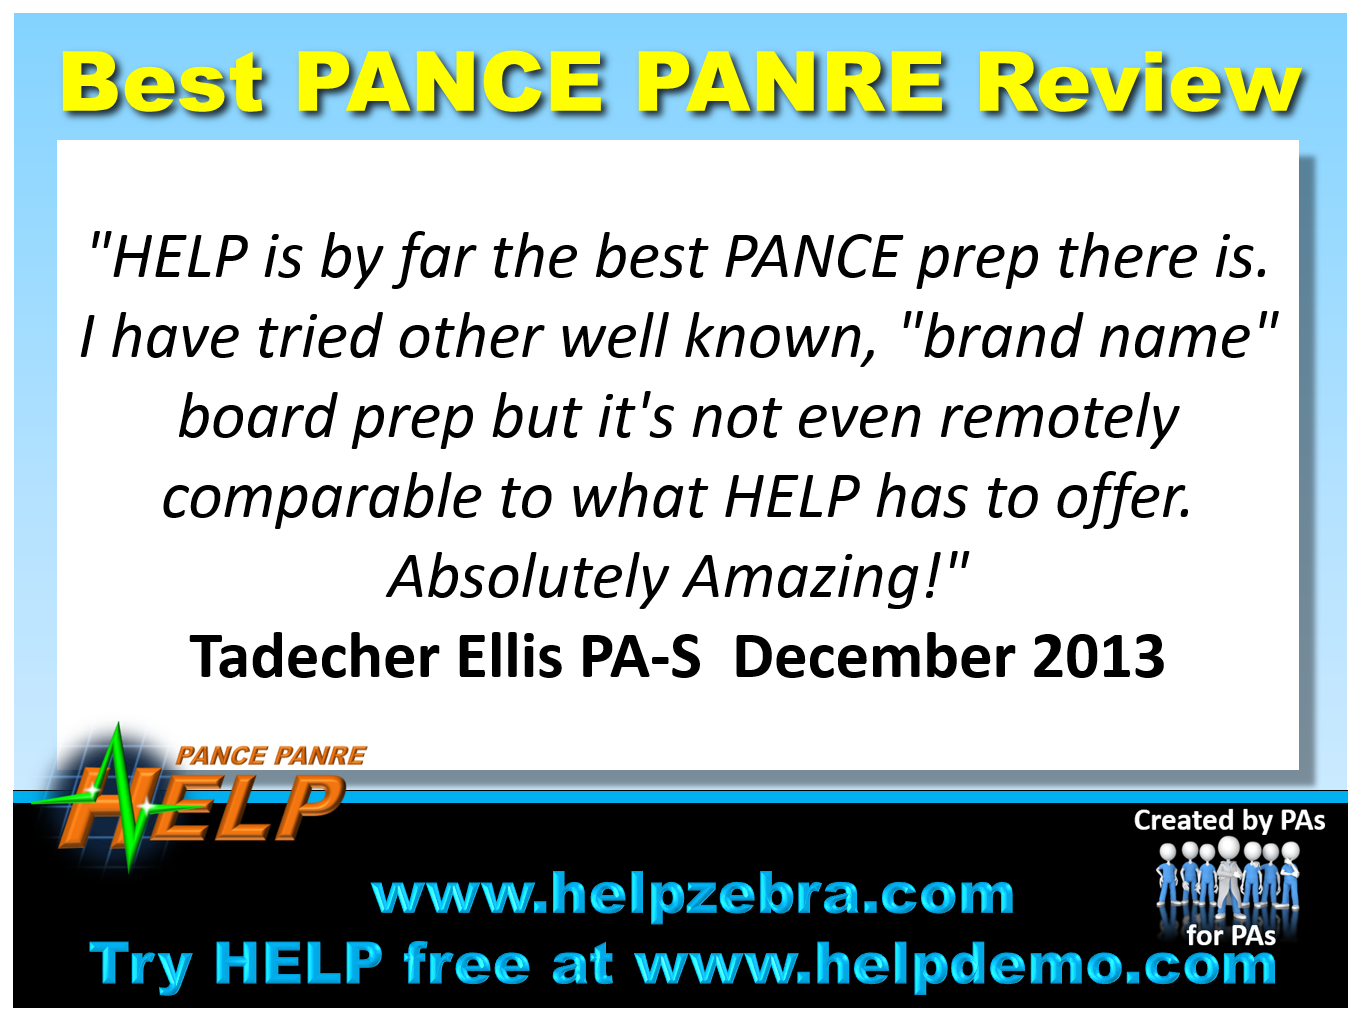 Httphelpzebra help pance panre online pa exam review httphelpzebra help pance panre online pa exam review course the most complete review on the web all nccpa blueprint topics covered in fully malvernweather Images